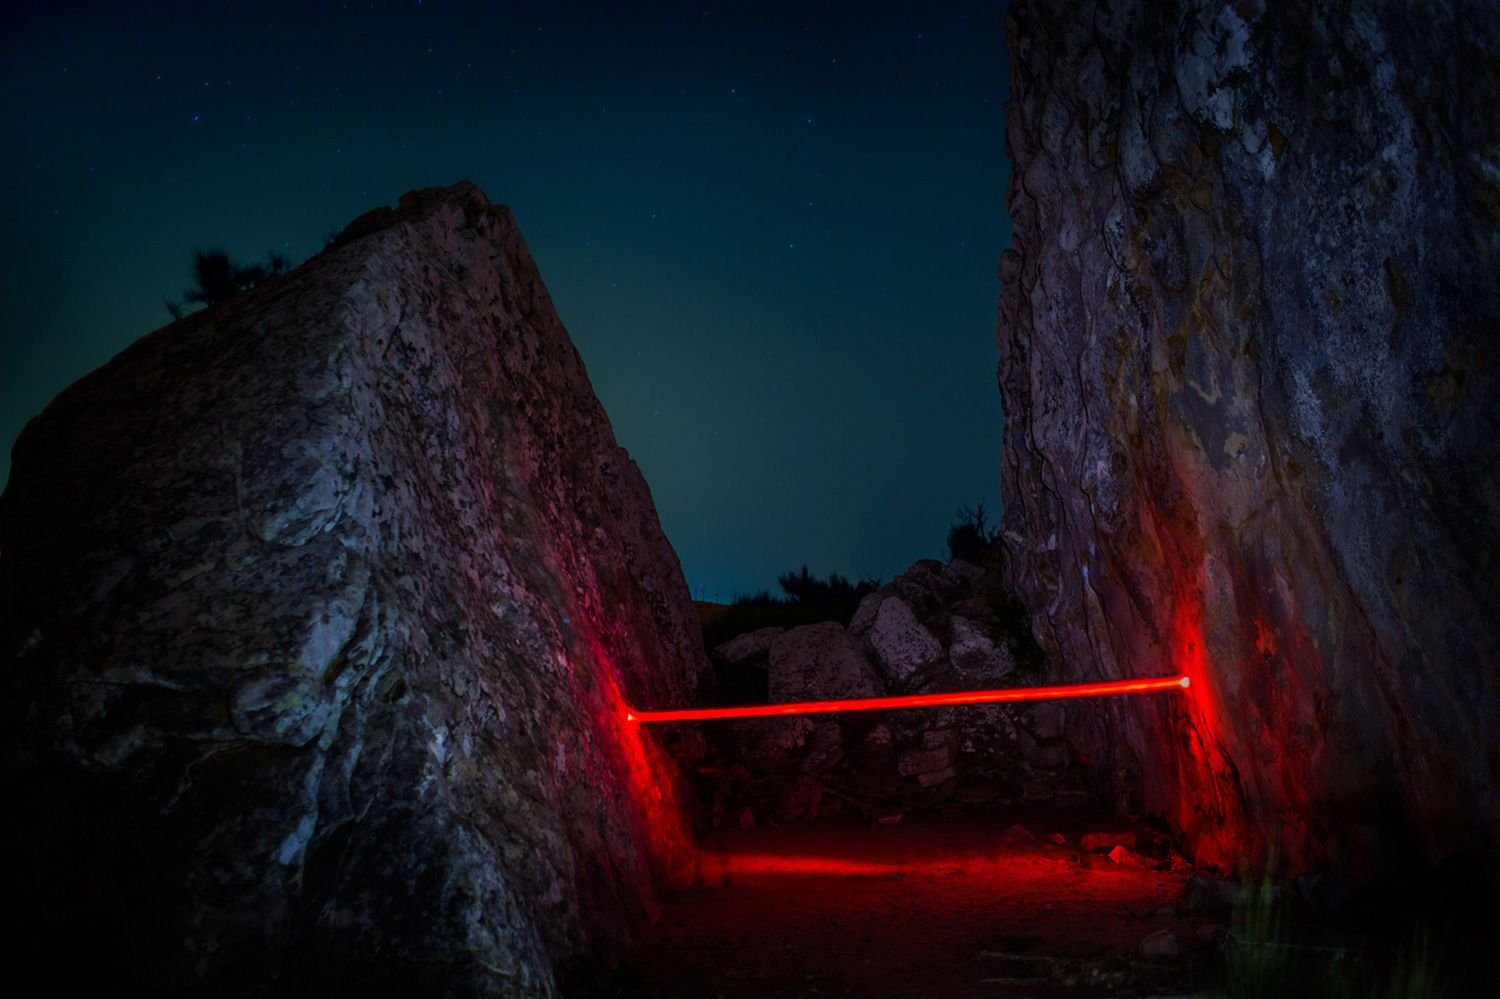 captivating light installations in nature by nicolas rivals - Captivating Light Installation Artists